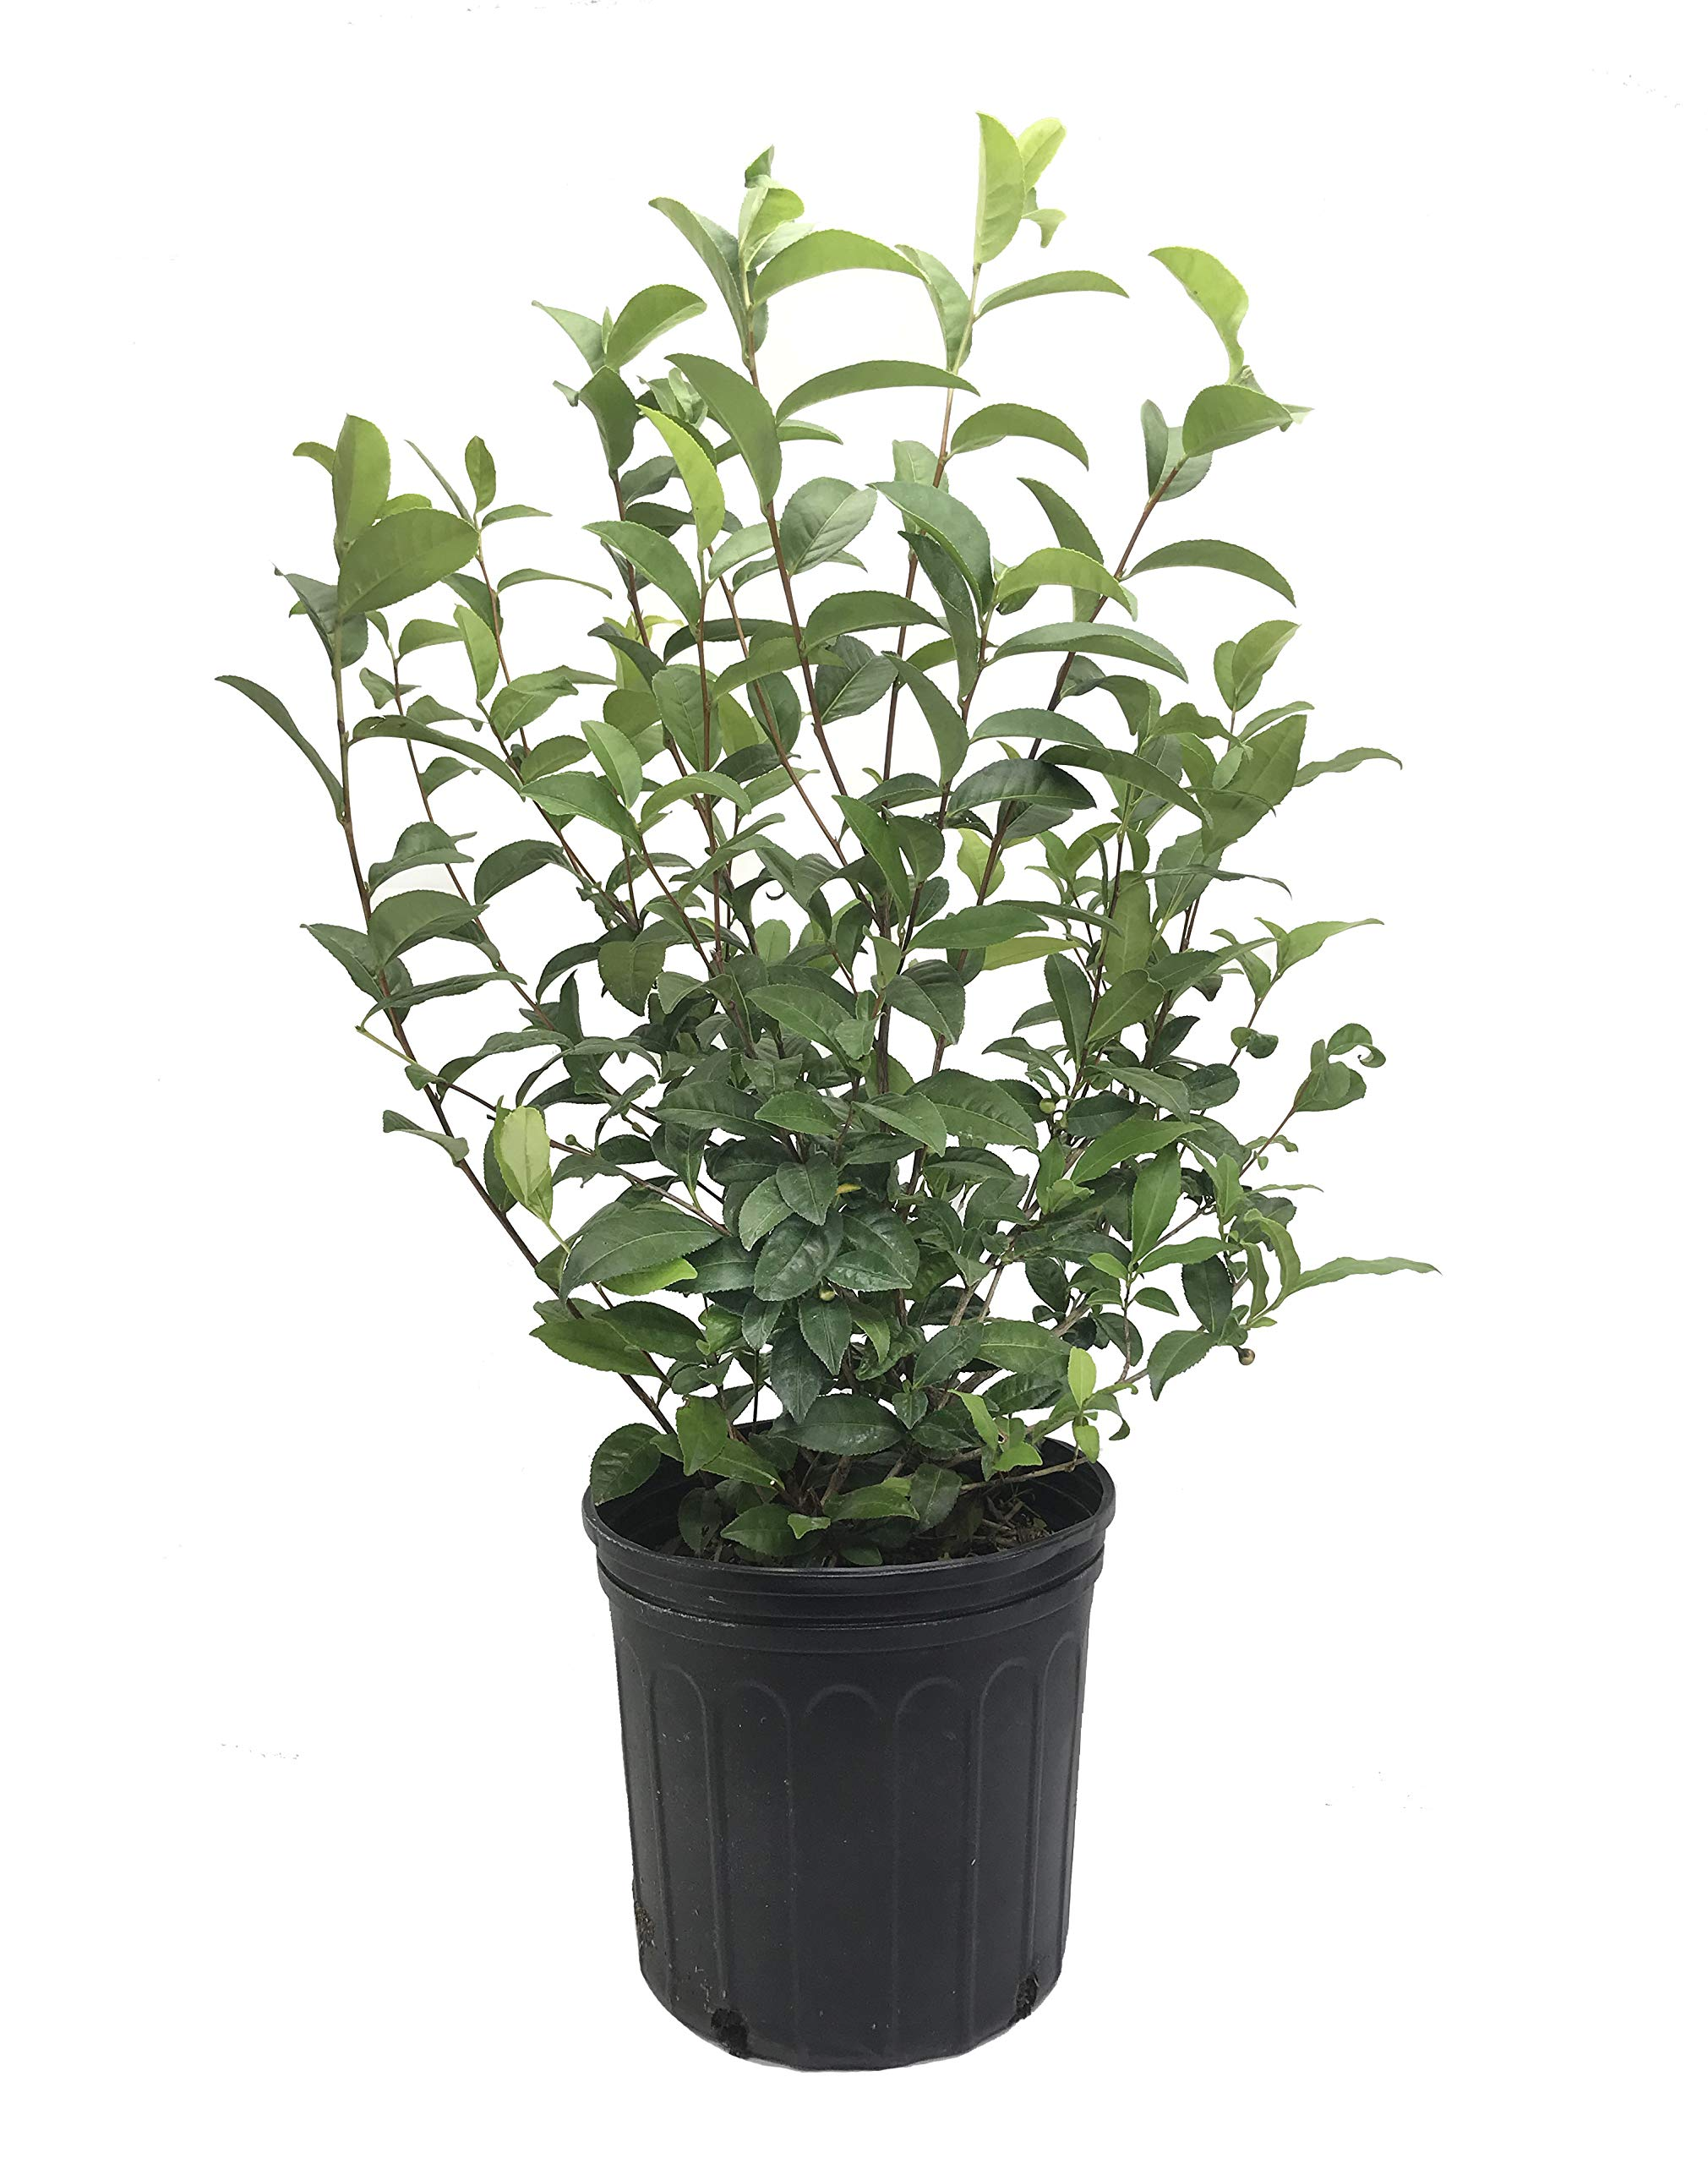 Camellia Sinensis - 10 Inch Container - Very Large & Beautiful Live Tea Plant - Brew Your Own Black, White, Green & Oolong Tea